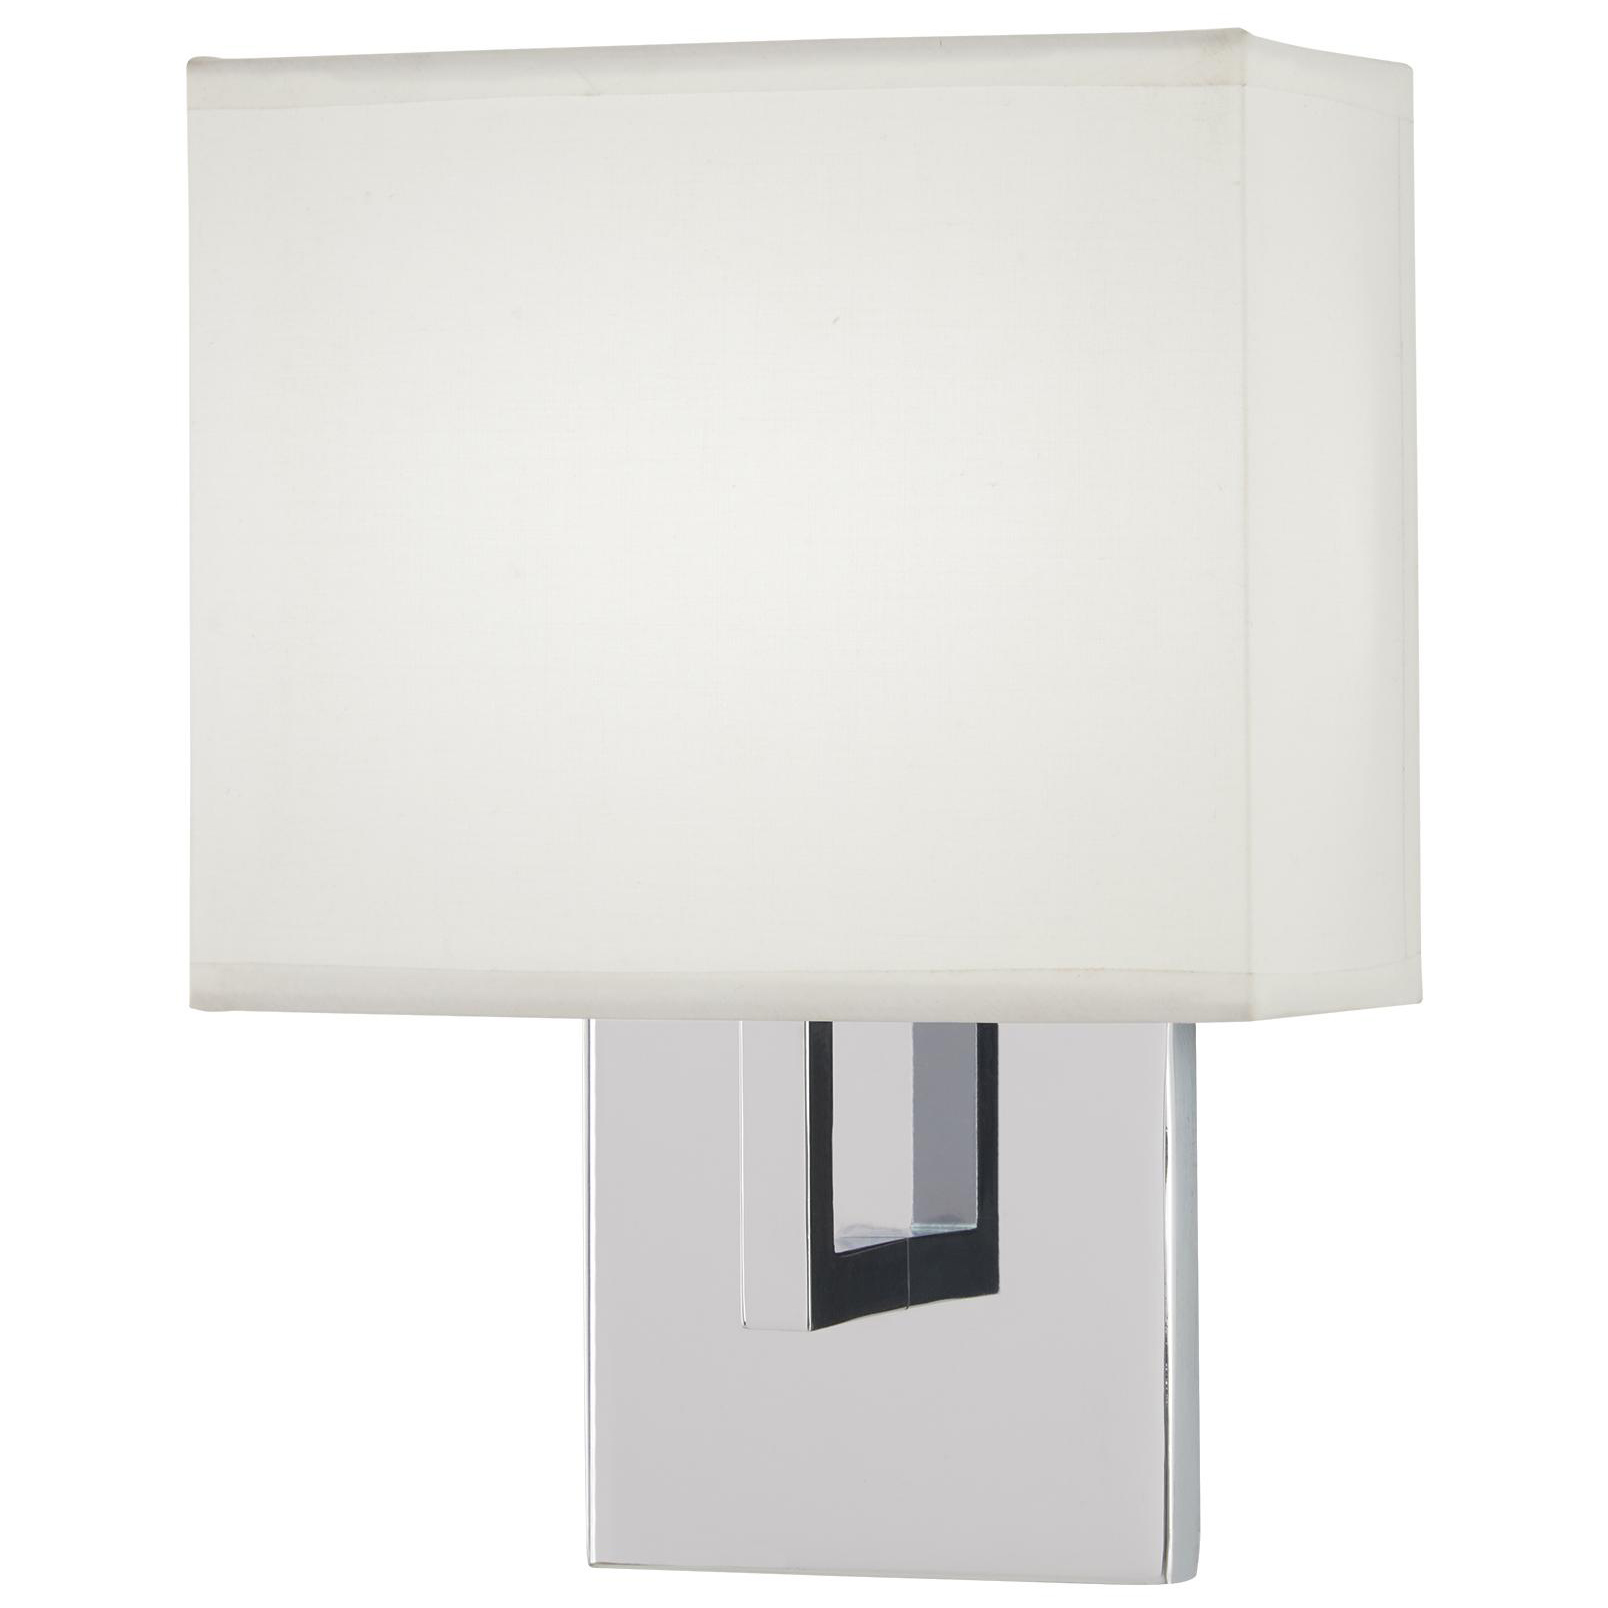 P470 LED Wall Sconce